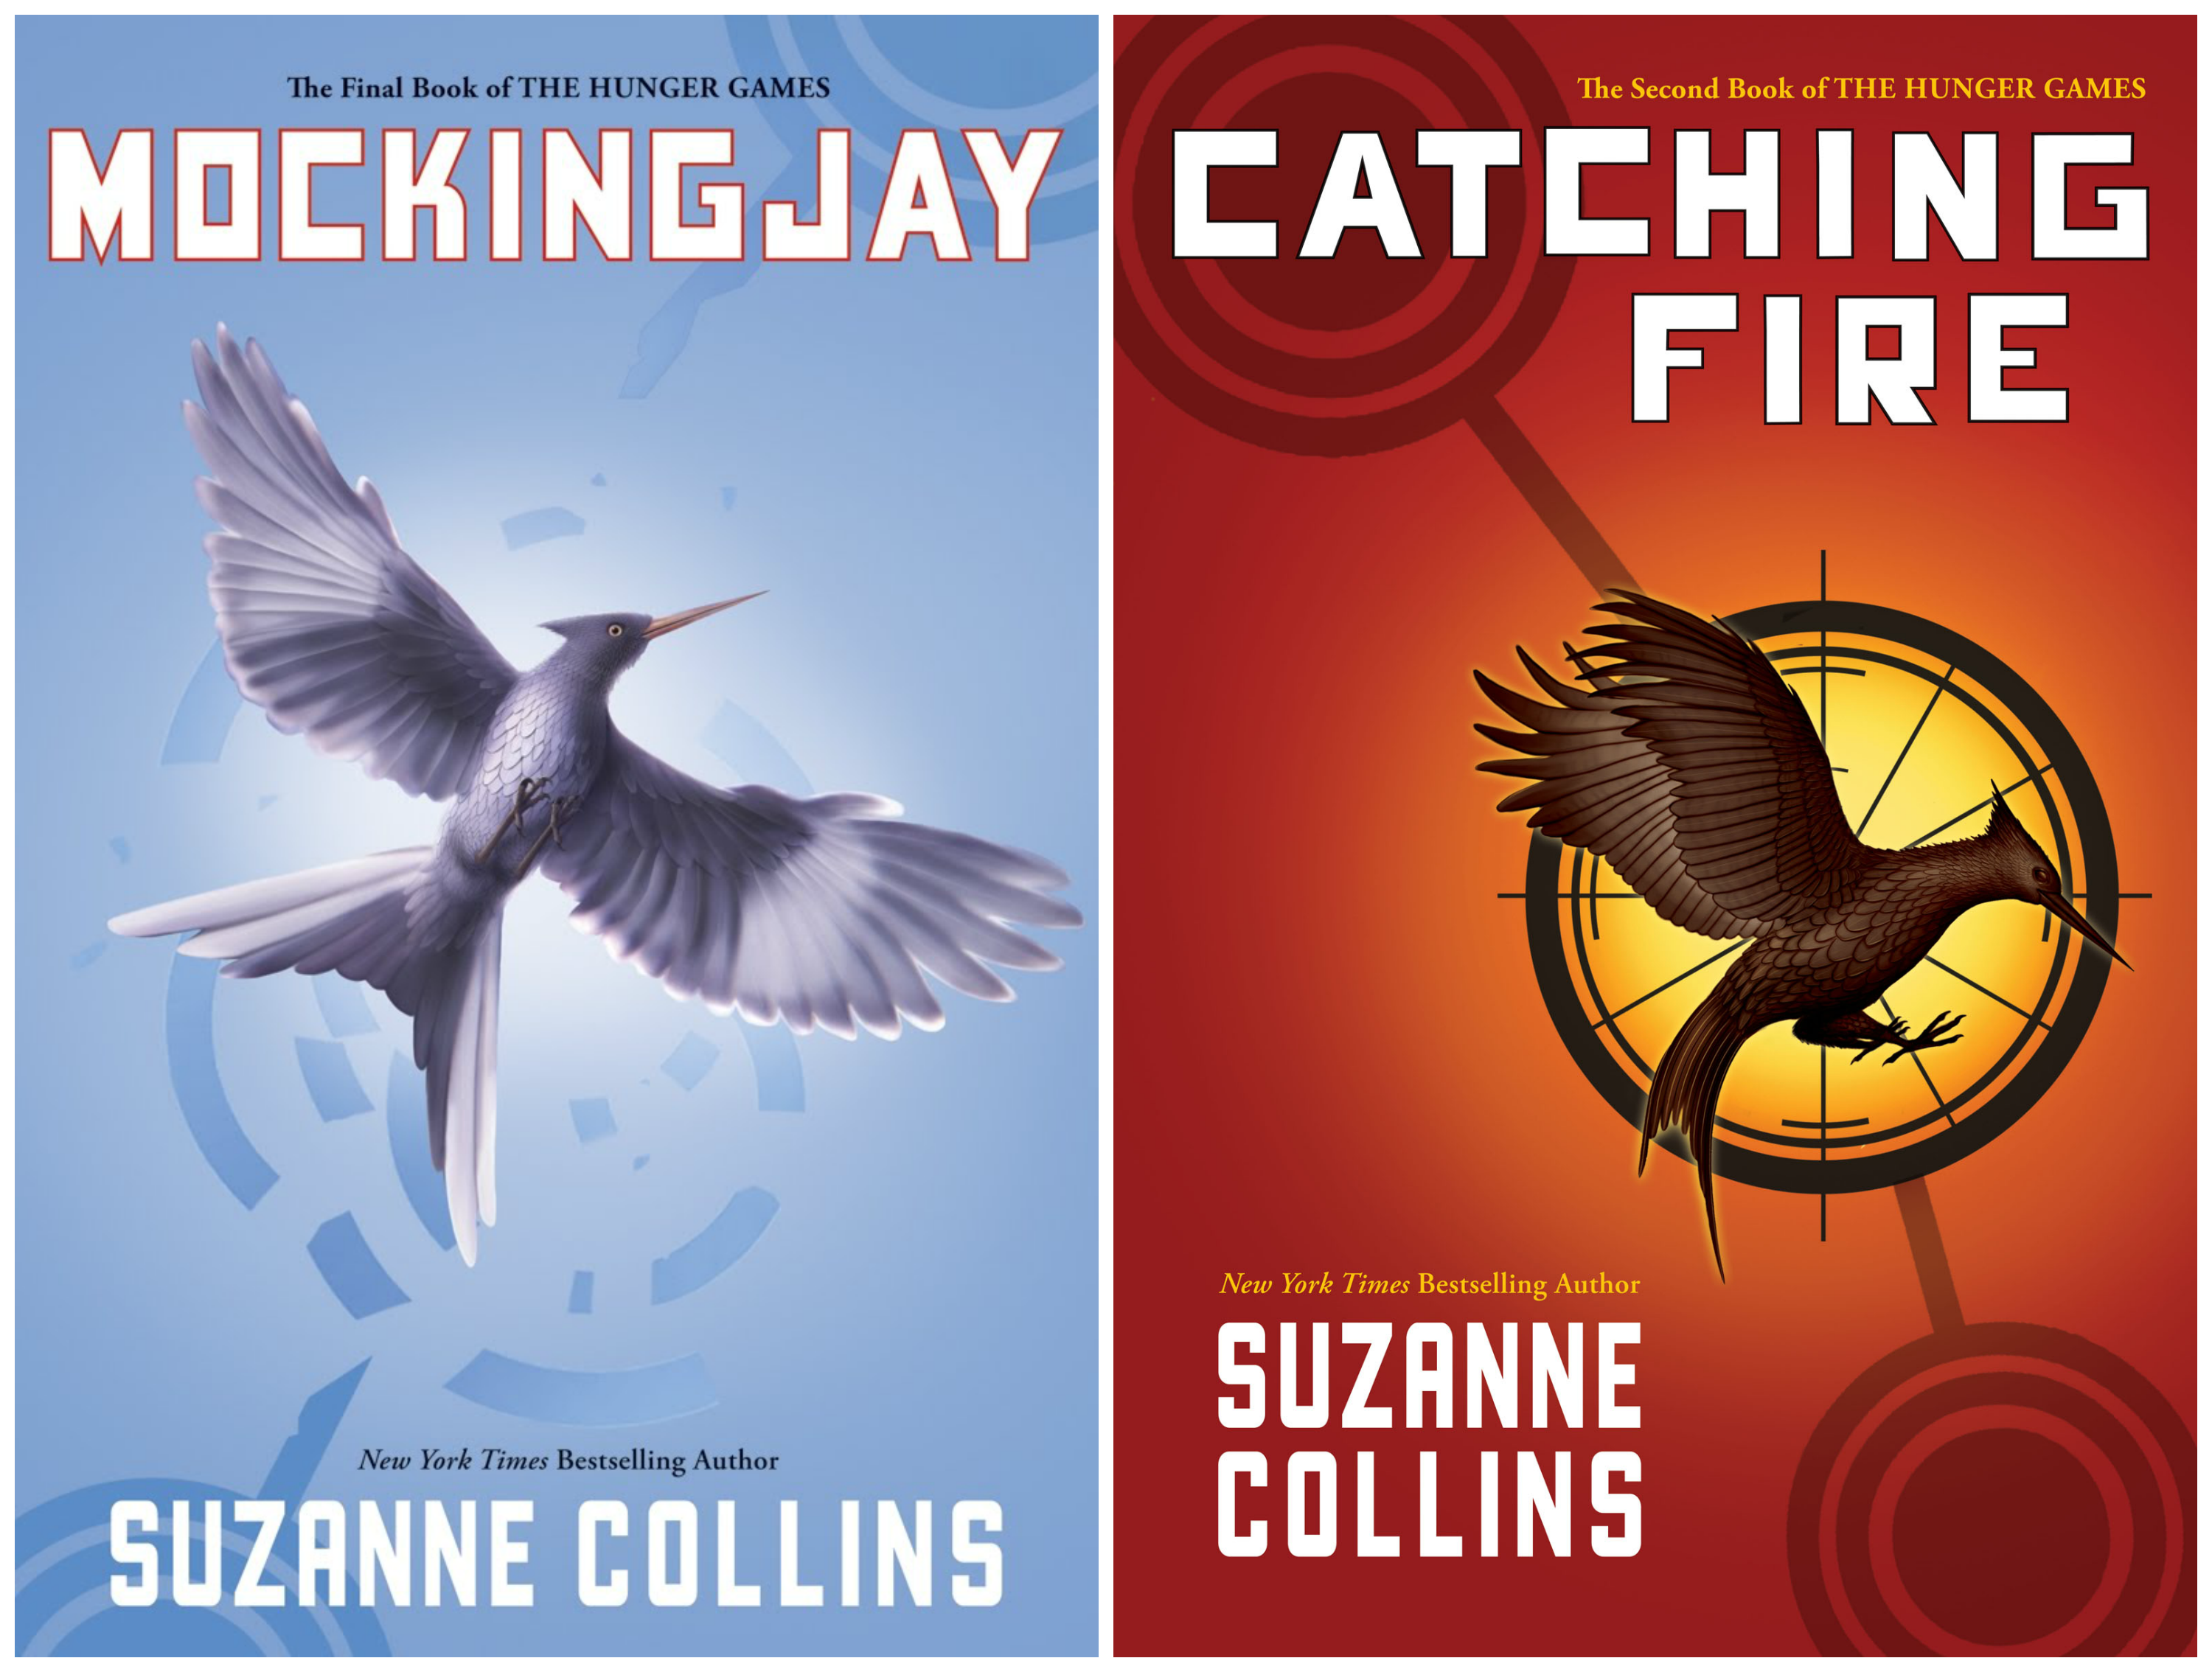 book summary hunger games mockingjay Mockingjay by author suzanne collins is the third installment in the hunger games series this young adult novel follows protagonist katniss everdeen as she fights in a futuristic rebellion .